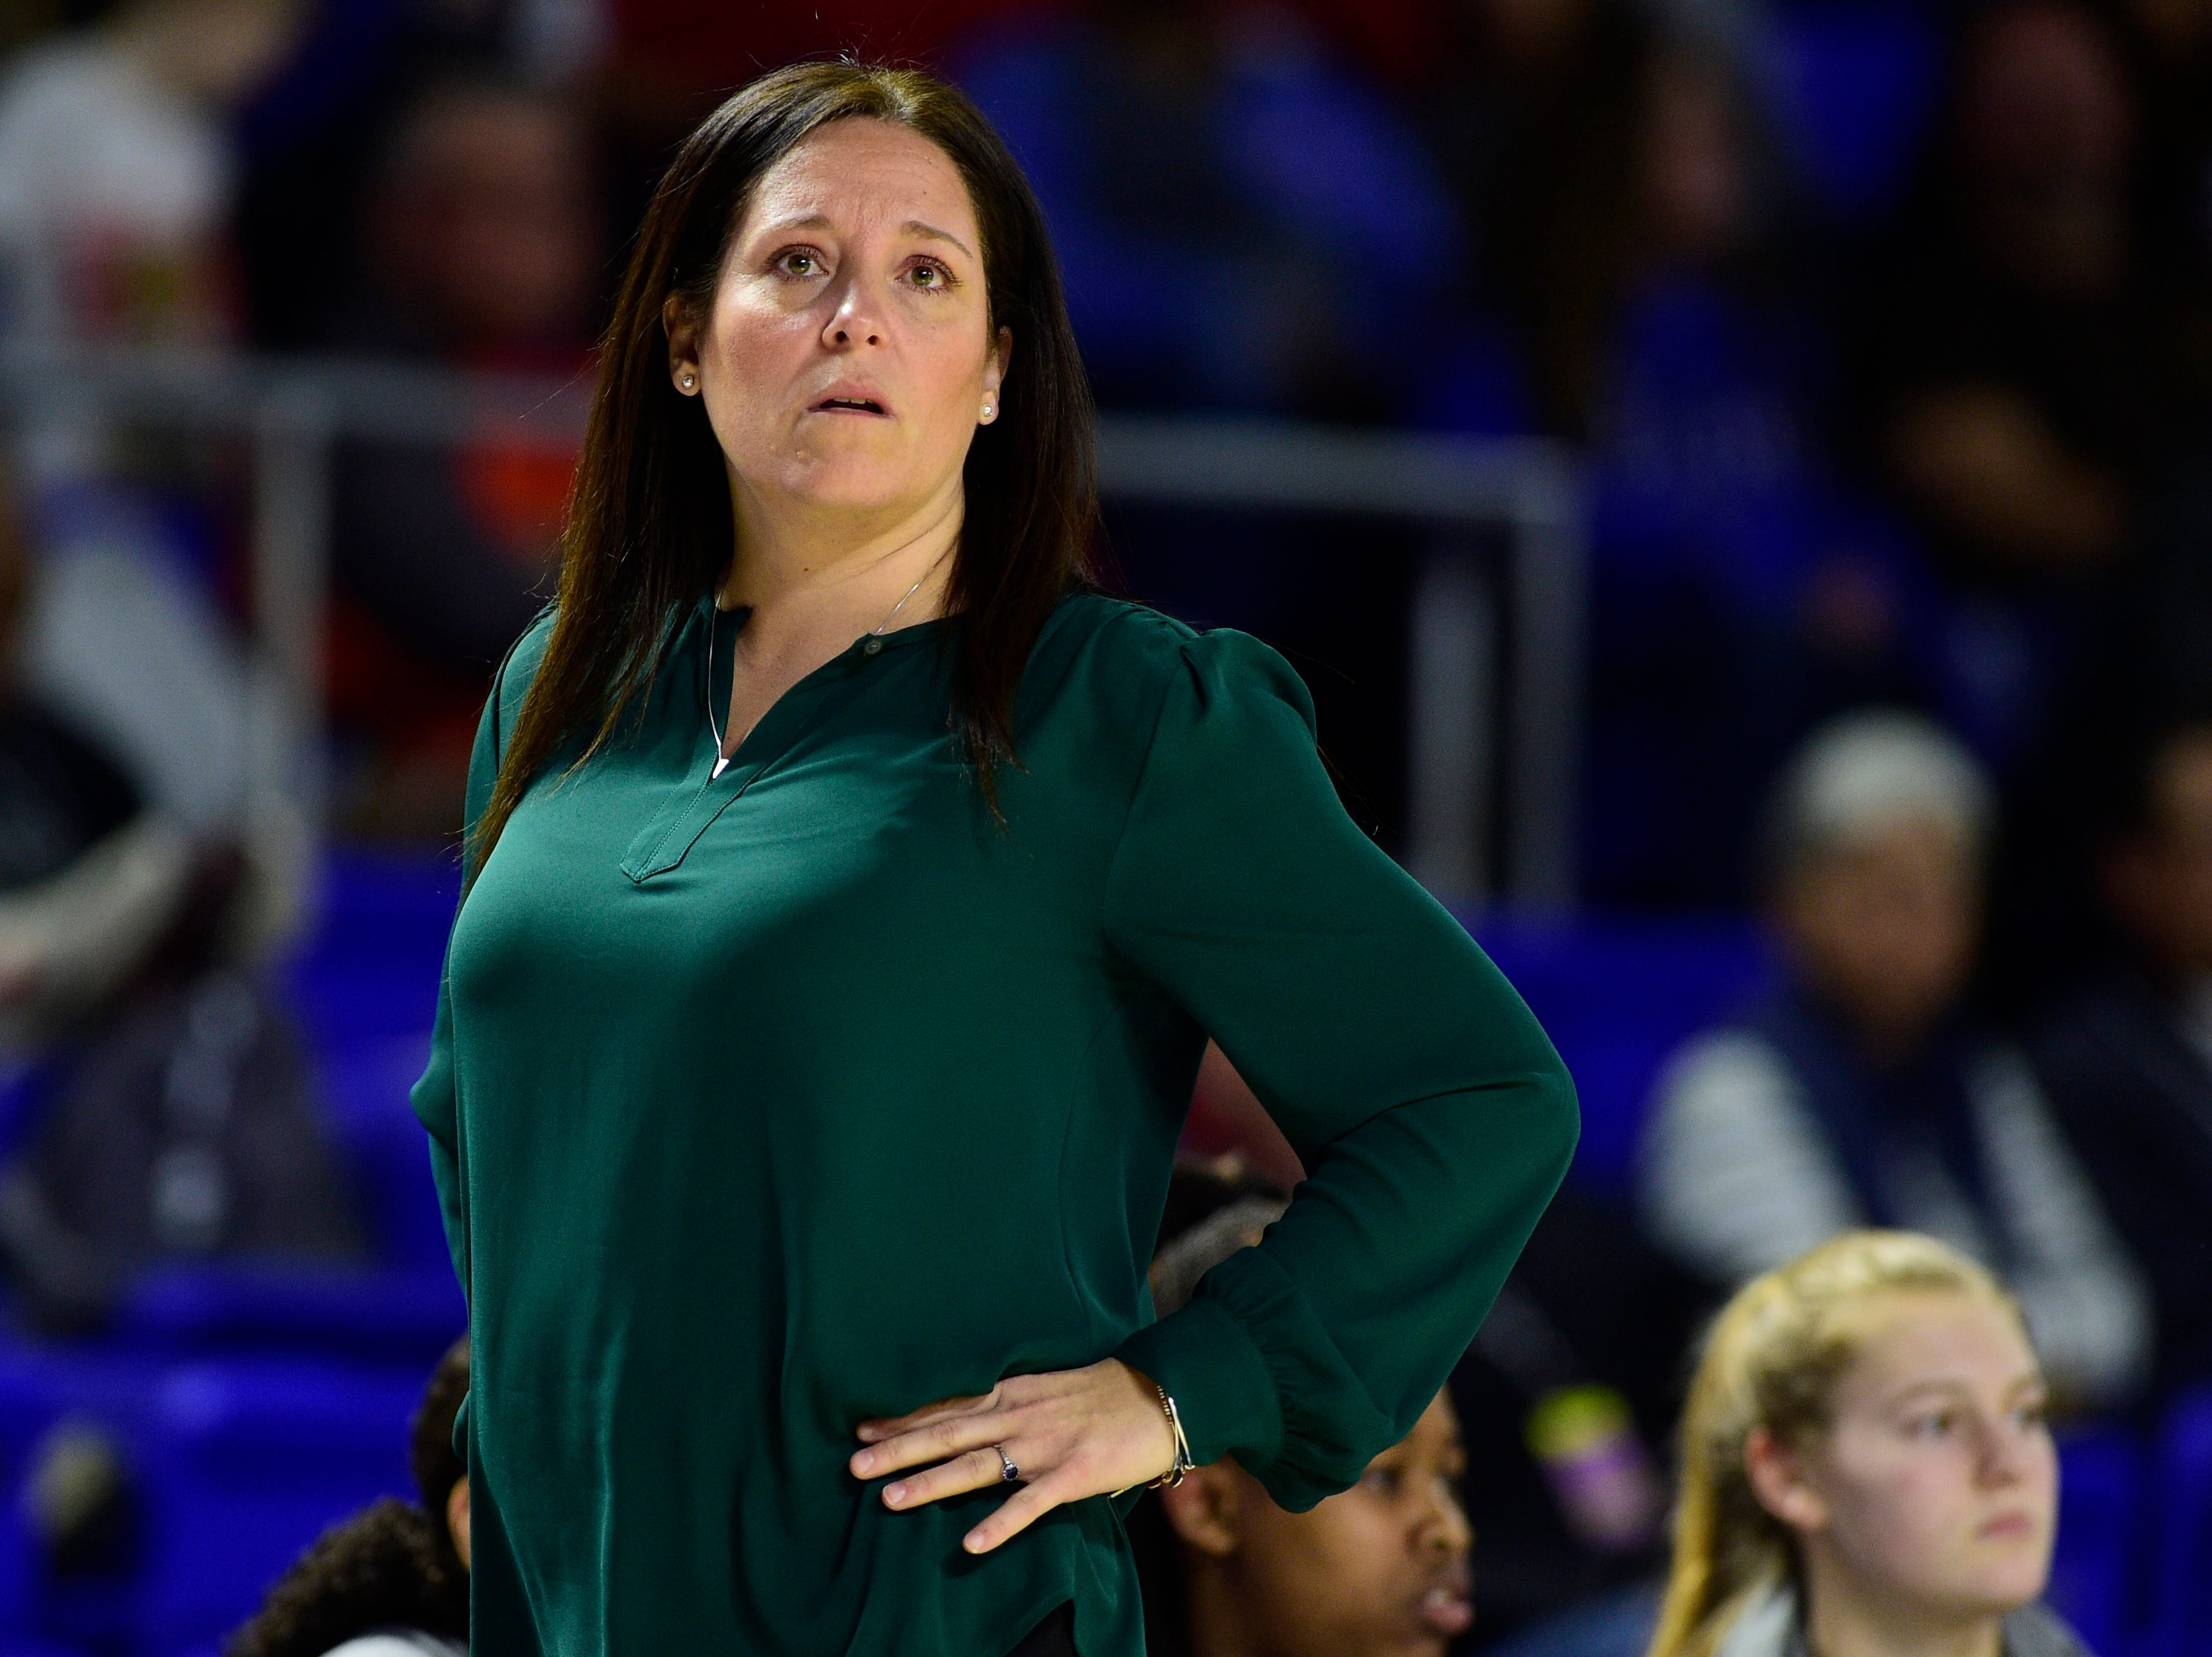 Oak Ridge Head Coach Paige Redman watches the game during a game between Oak Ridge and Bradley Central at the TSSAA girls state tournament at the Murphy Center in Murfreesboro, Tennessee on Friday, March 8, 2019.